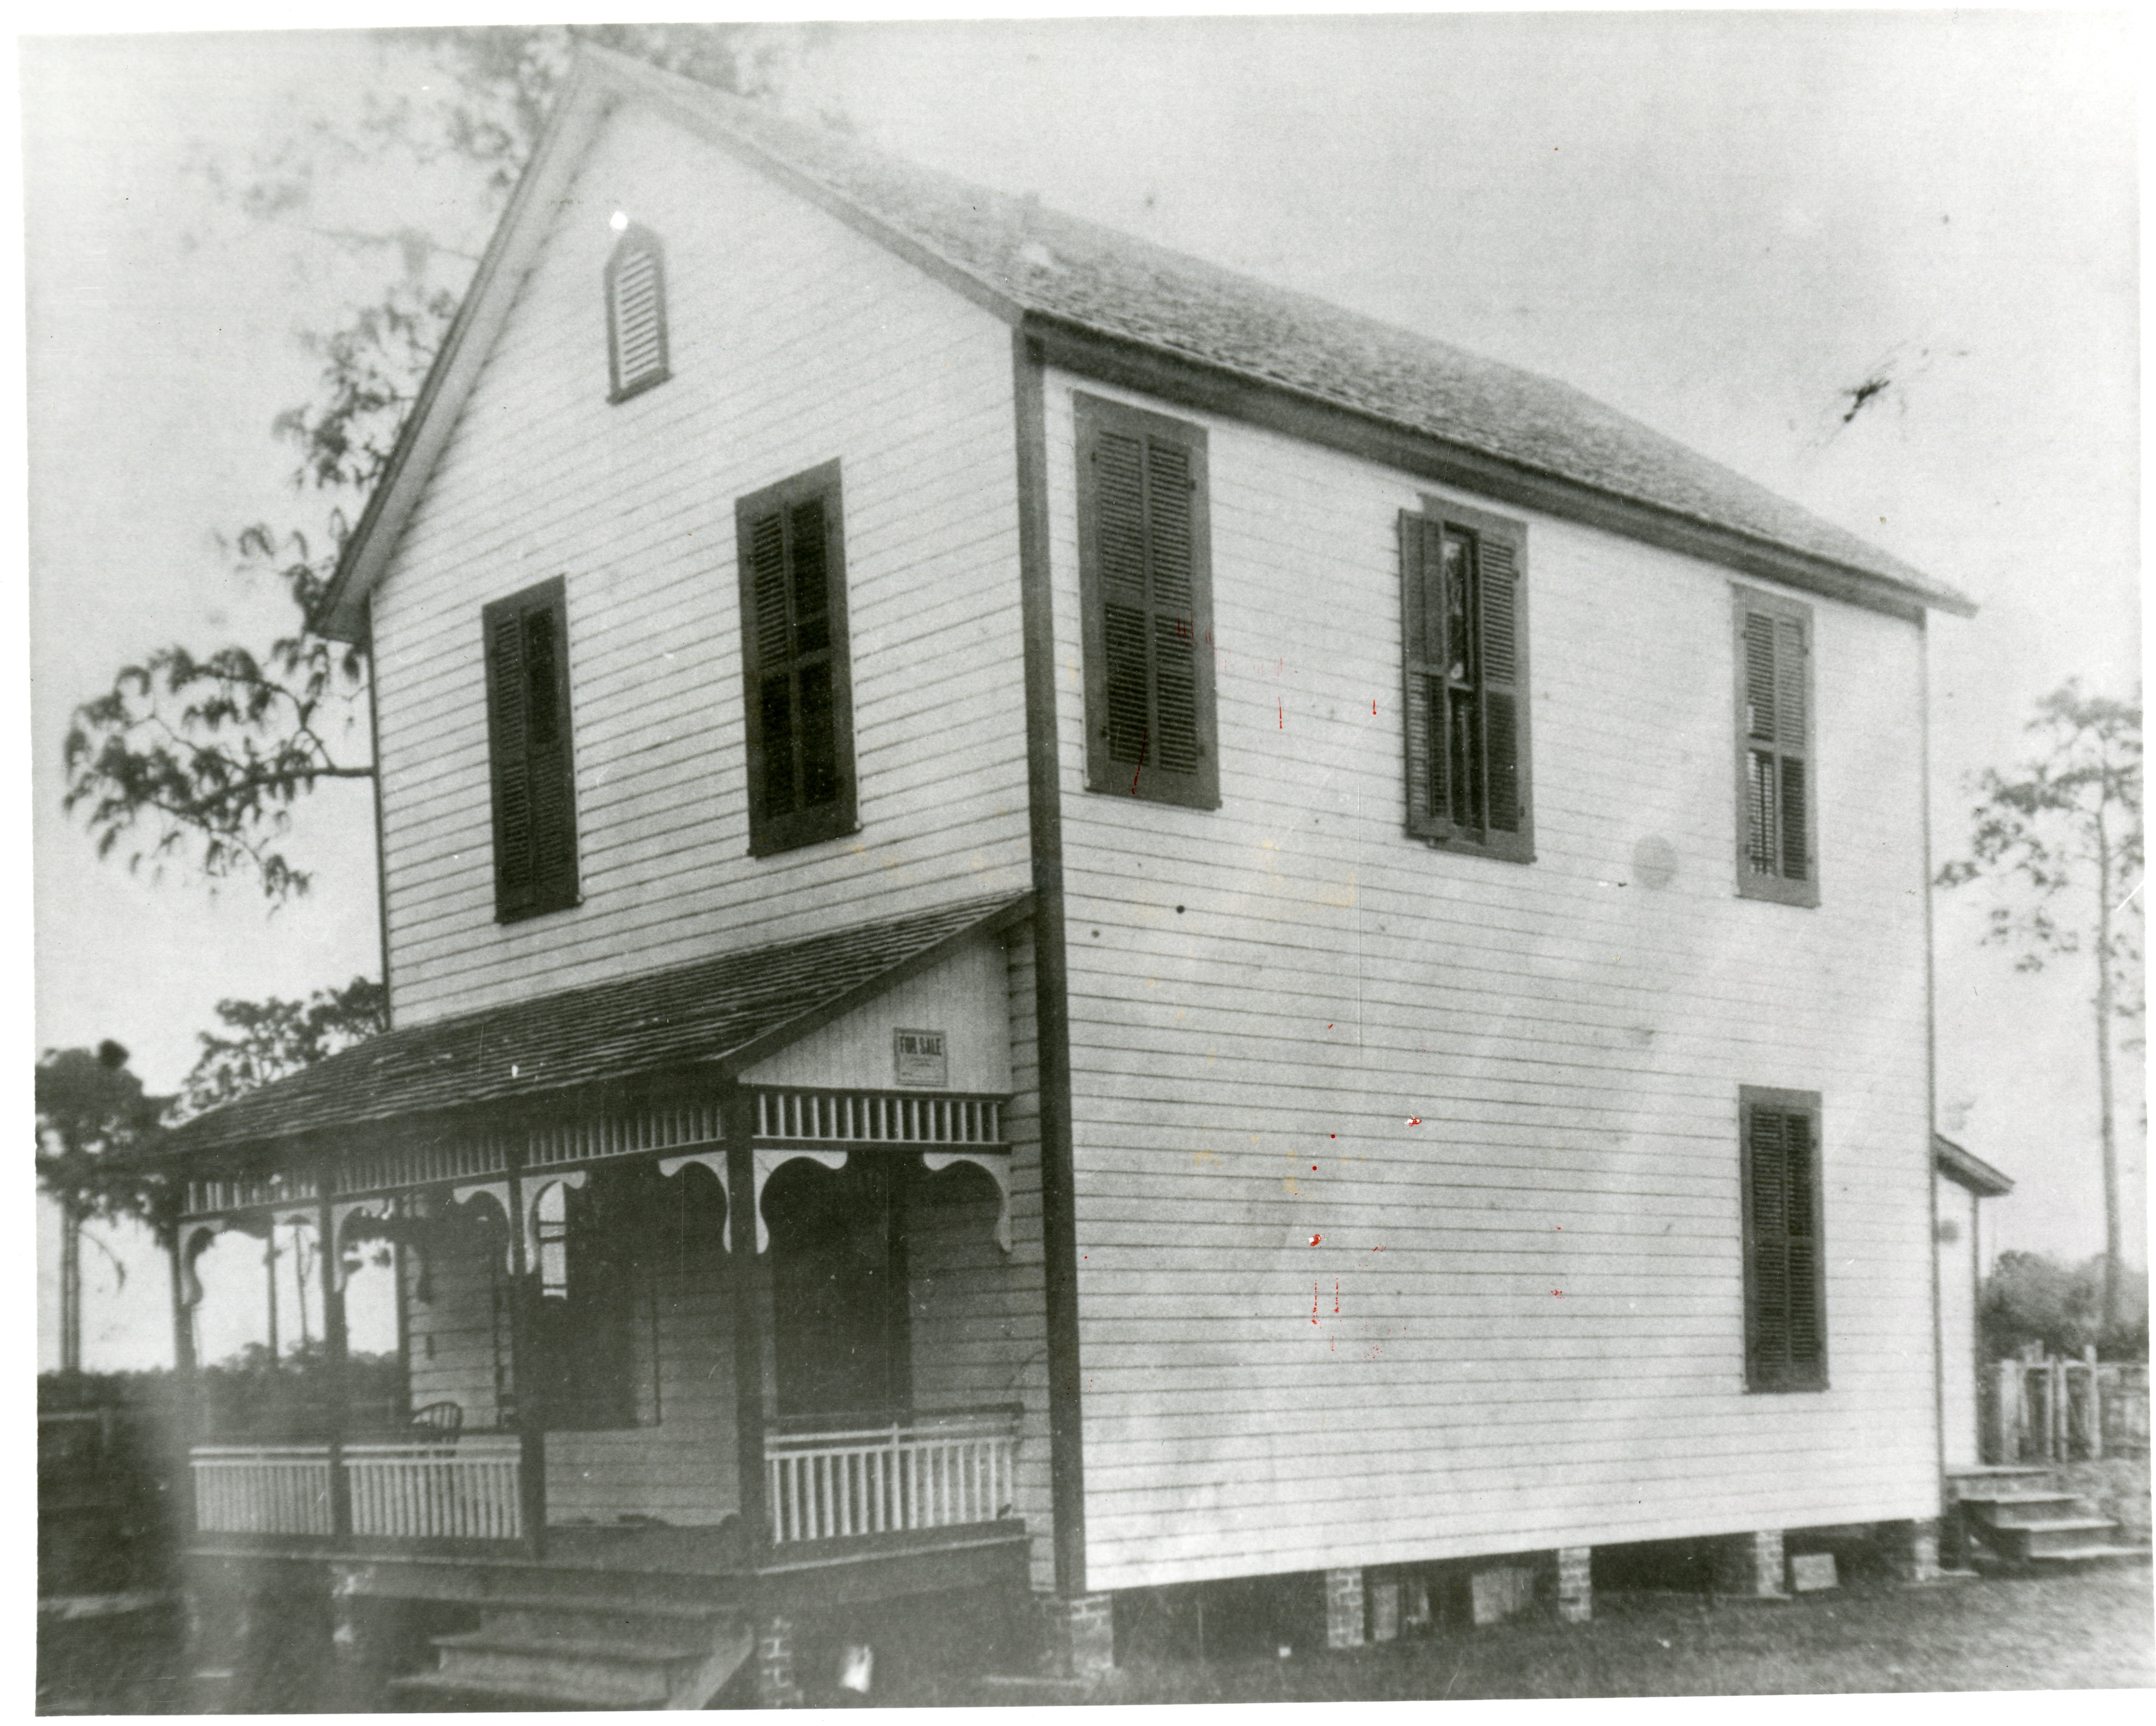 Plant-Sumner House in 1912, the year Robert Sumner purchased the structure. Sumner served as the postmaster, a dairy farmer, and a minister in the Clearwater area.